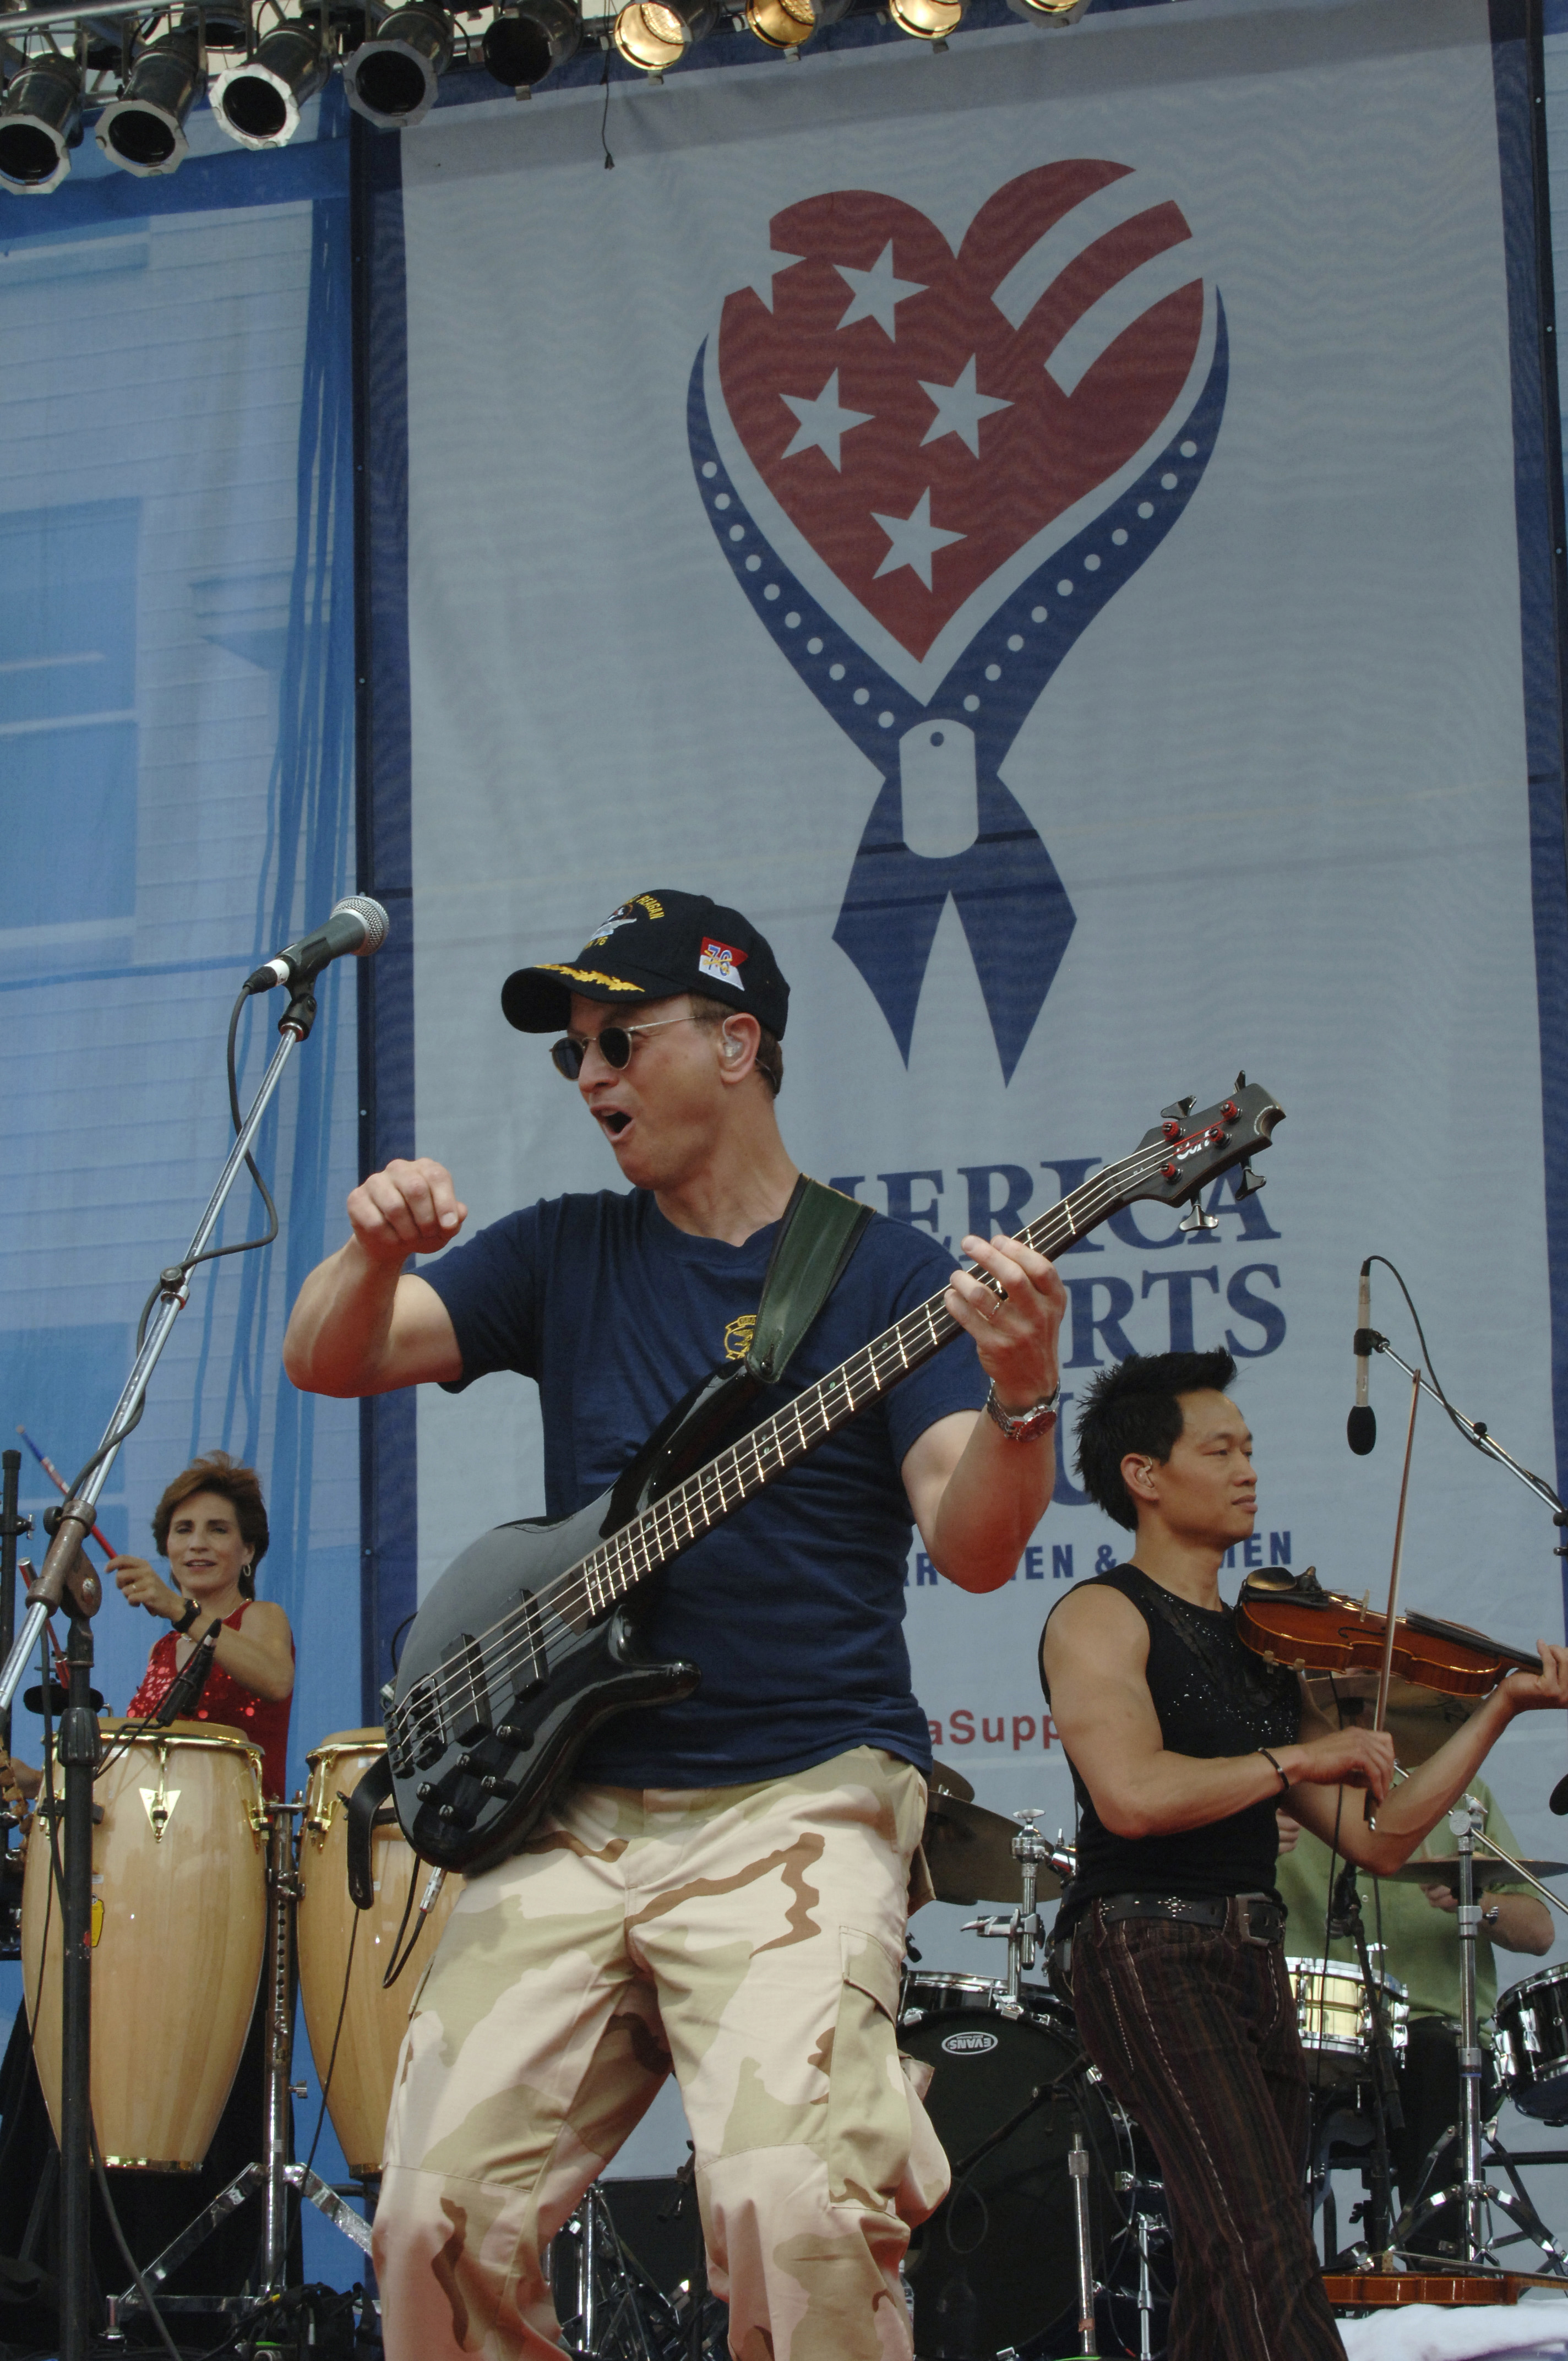 File:Gary Sinise and Lt. Dan Band.jpg